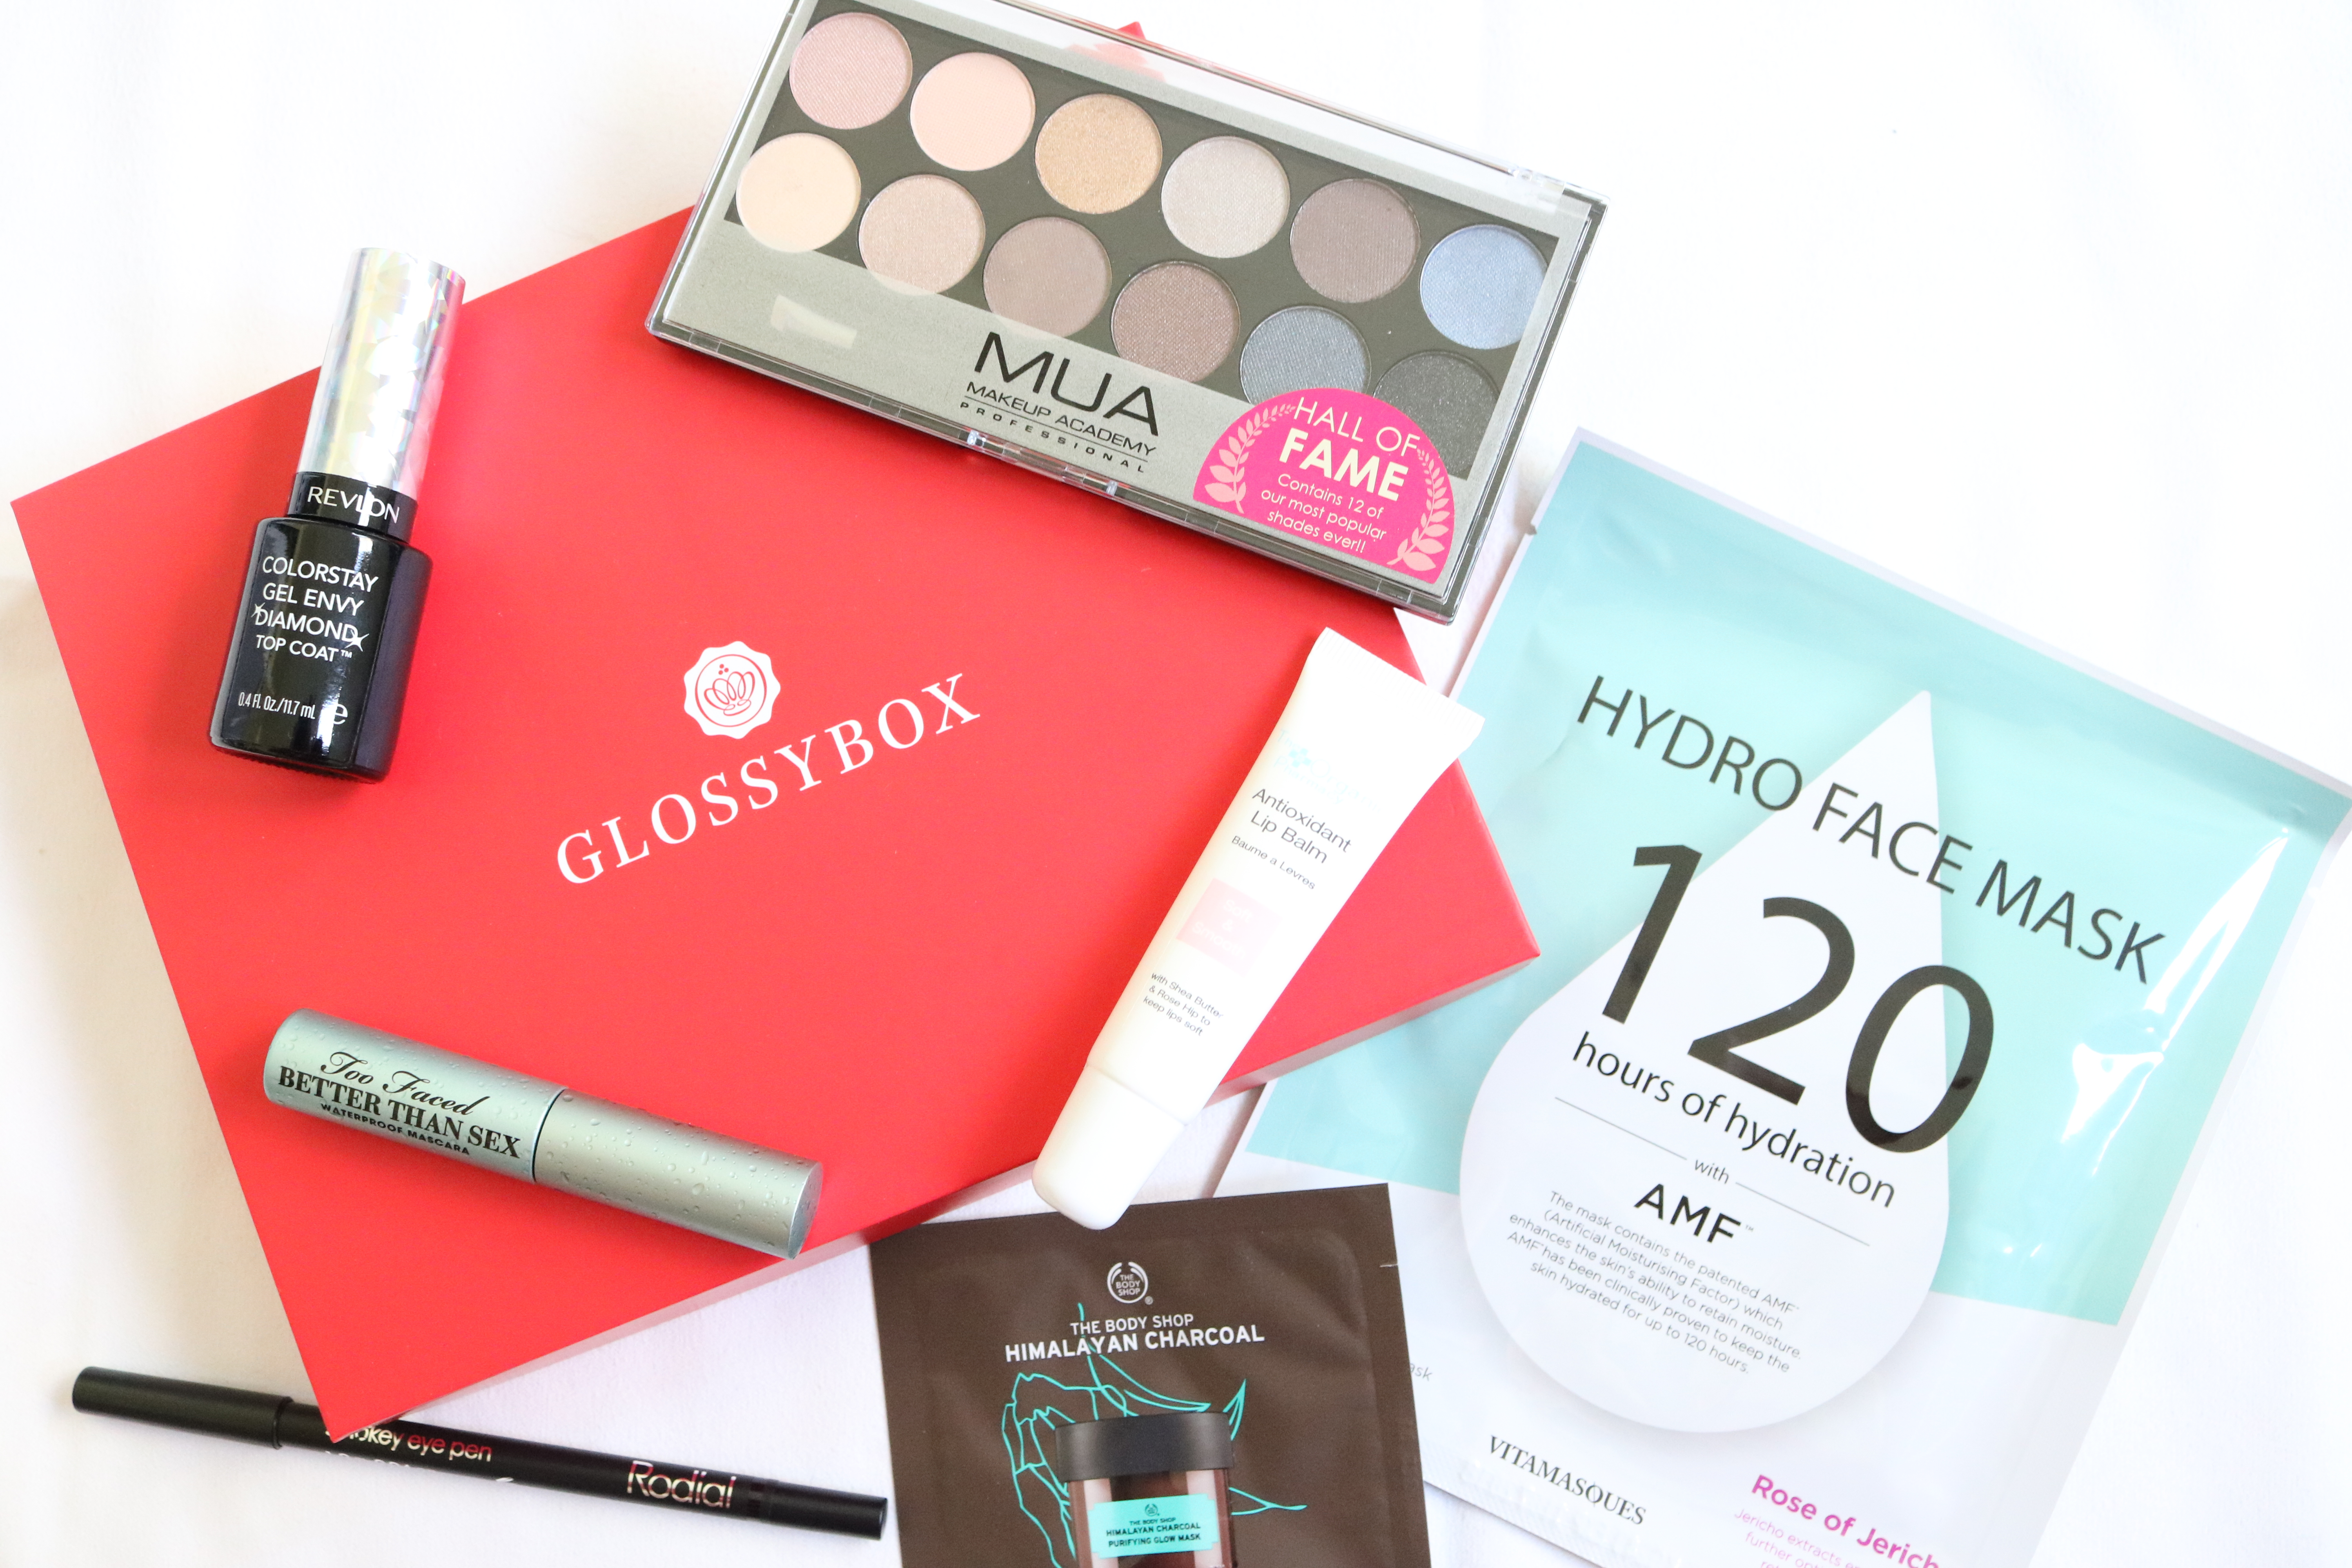 Glossybox, Jodetopia, Too Faced, Vitamasques, The Body Shop, MUA, Revlon, Rodial, The Organic Pharmacy